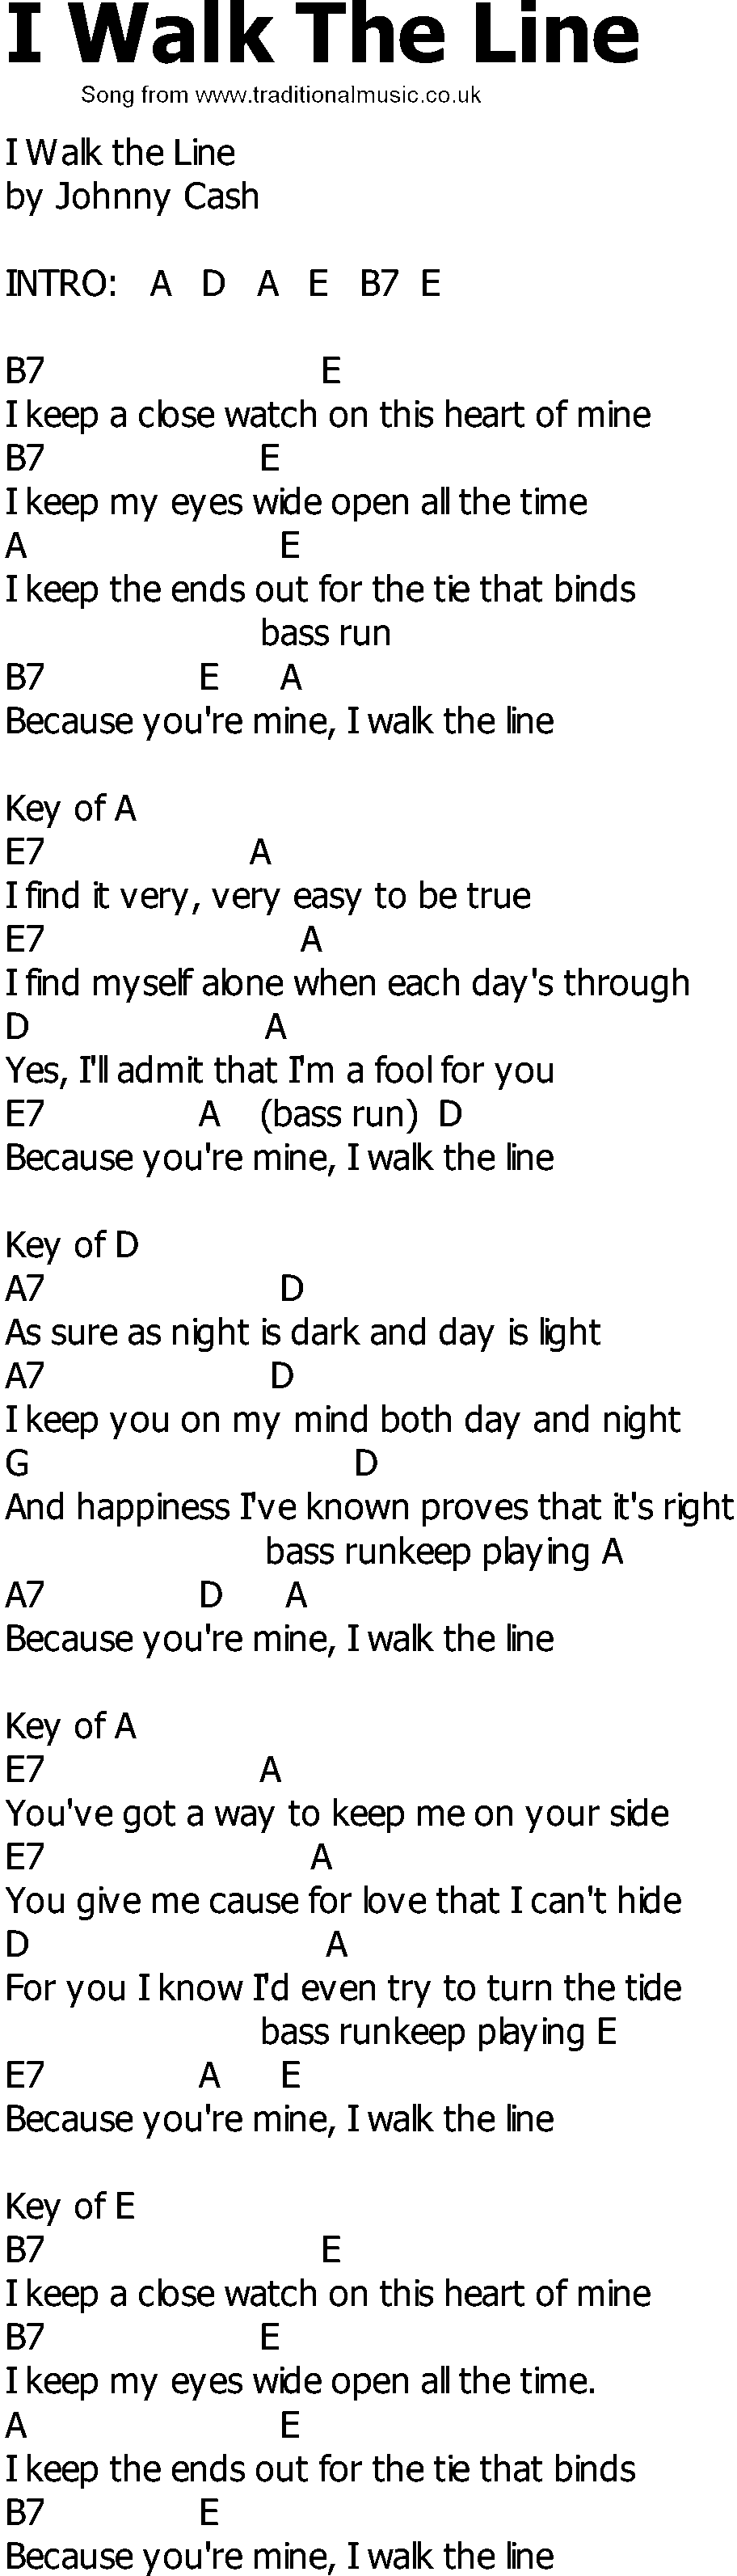 Old Country Song Lyrics With Chords